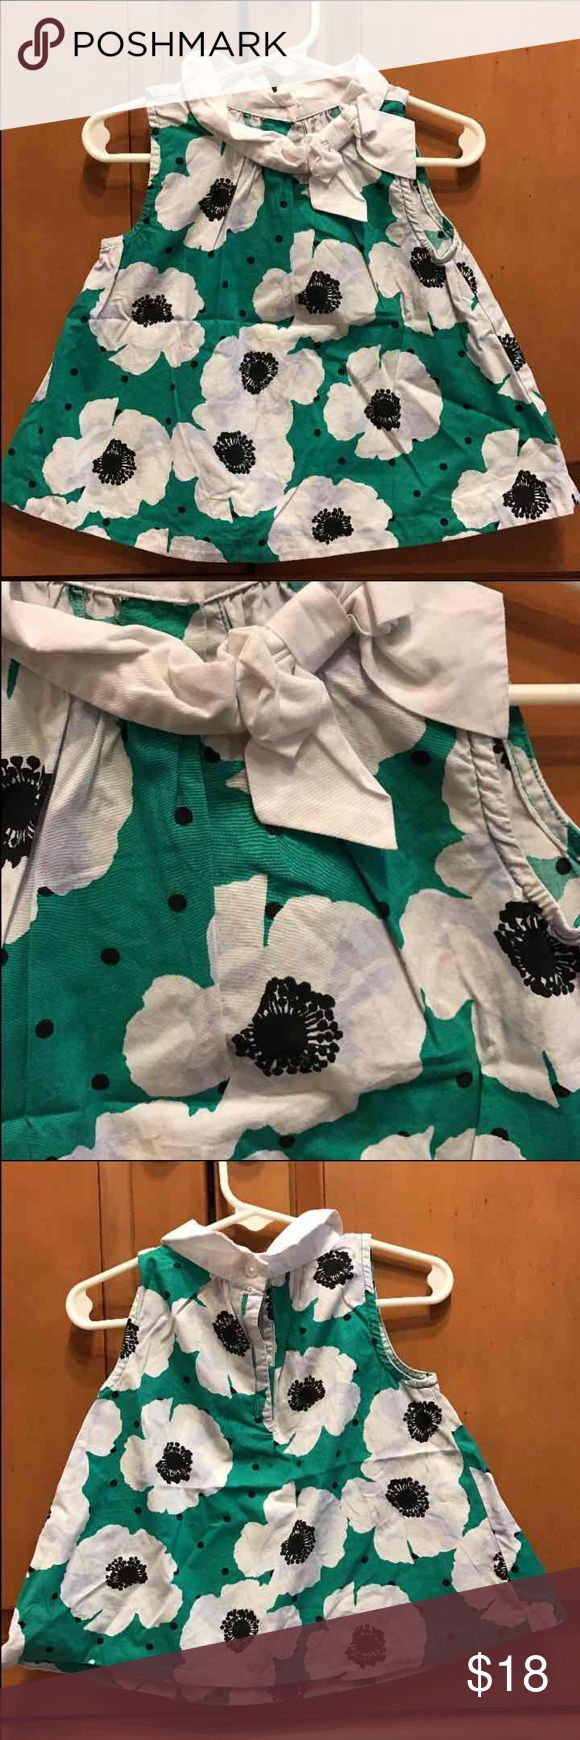 Janie and Jack green poppy print blouse top 2t The shirt is in excellent used condition it does need to be ironed.  It is from 2014 collection. Janie and Jack Shirts & Tops Blouses